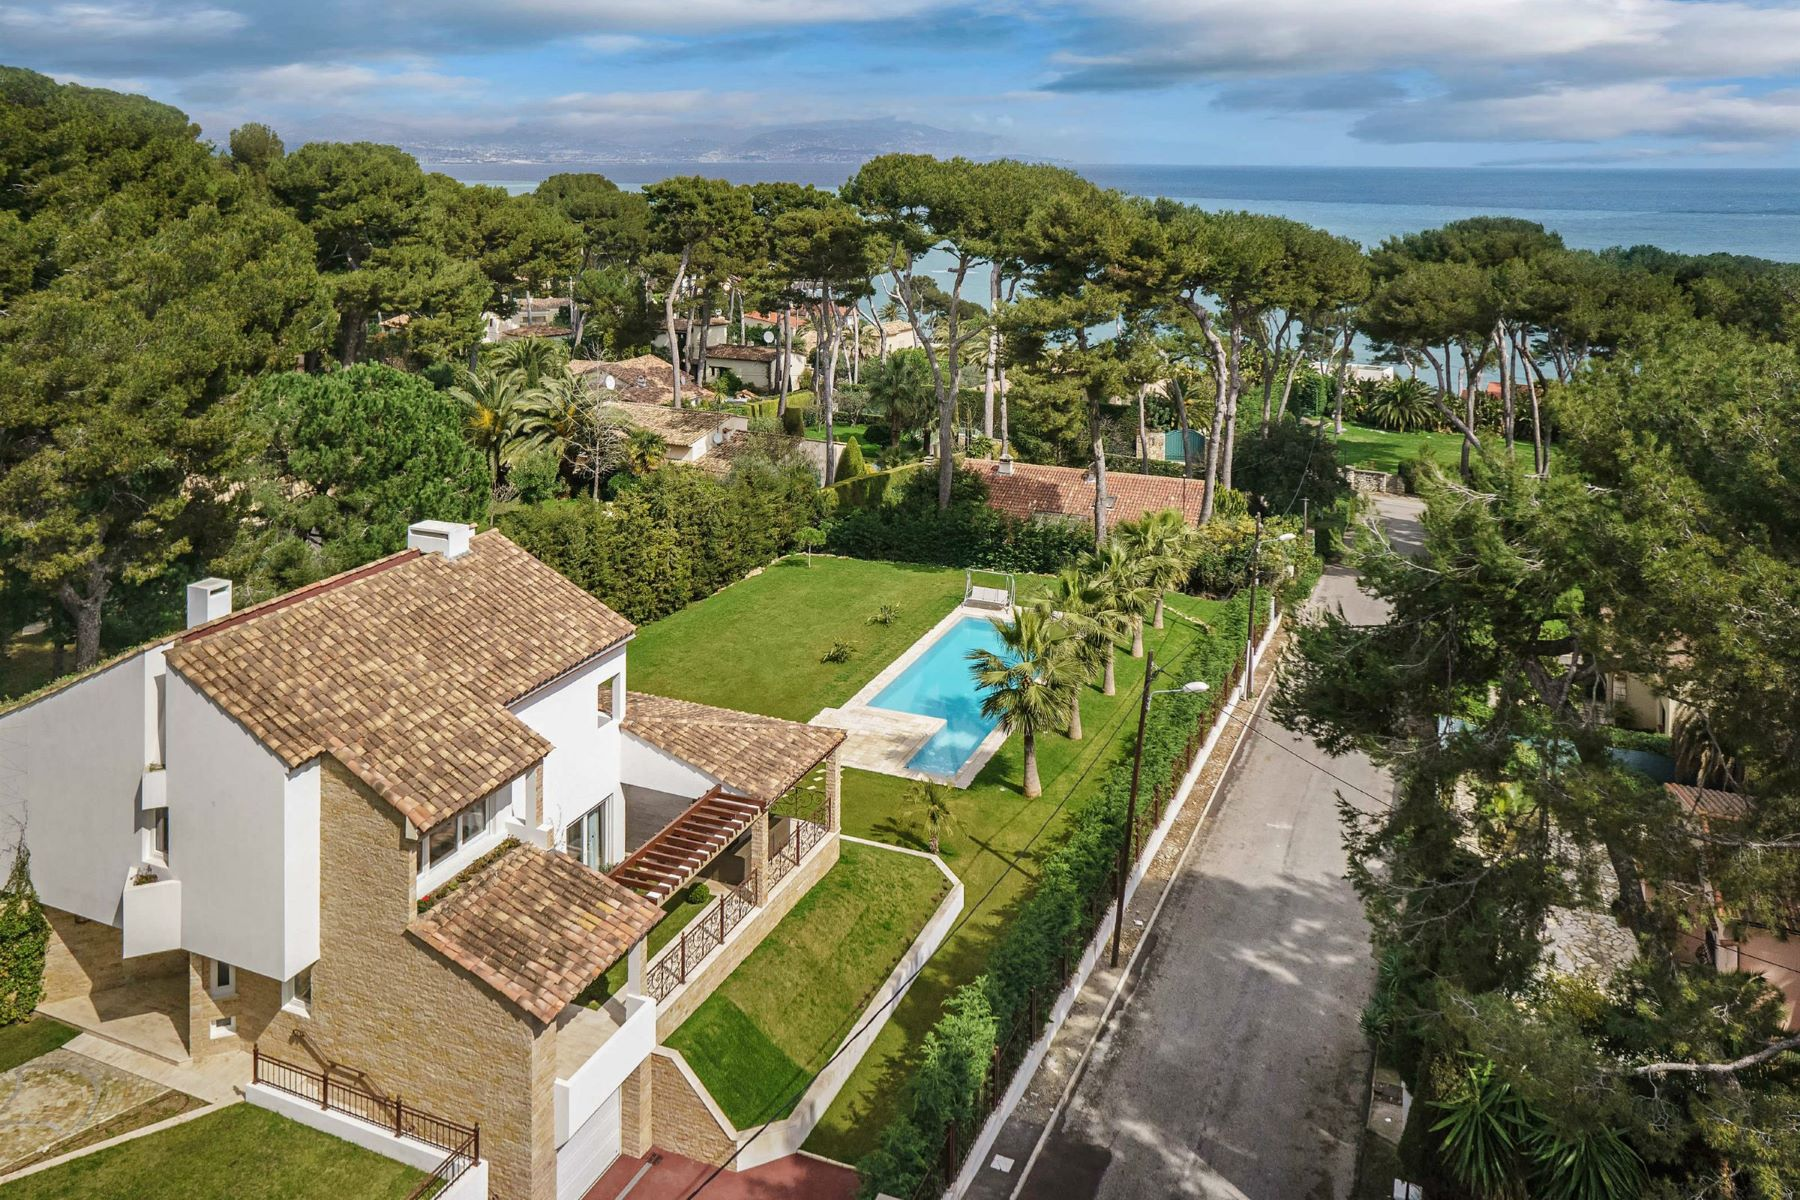 Single Family Home for Sale at An Oasis in the heart of the Cap d'Antibes Other Provence-Alpes-Cote D'Azur, Provence-Alpes-Cote D'Azur, 06160 France